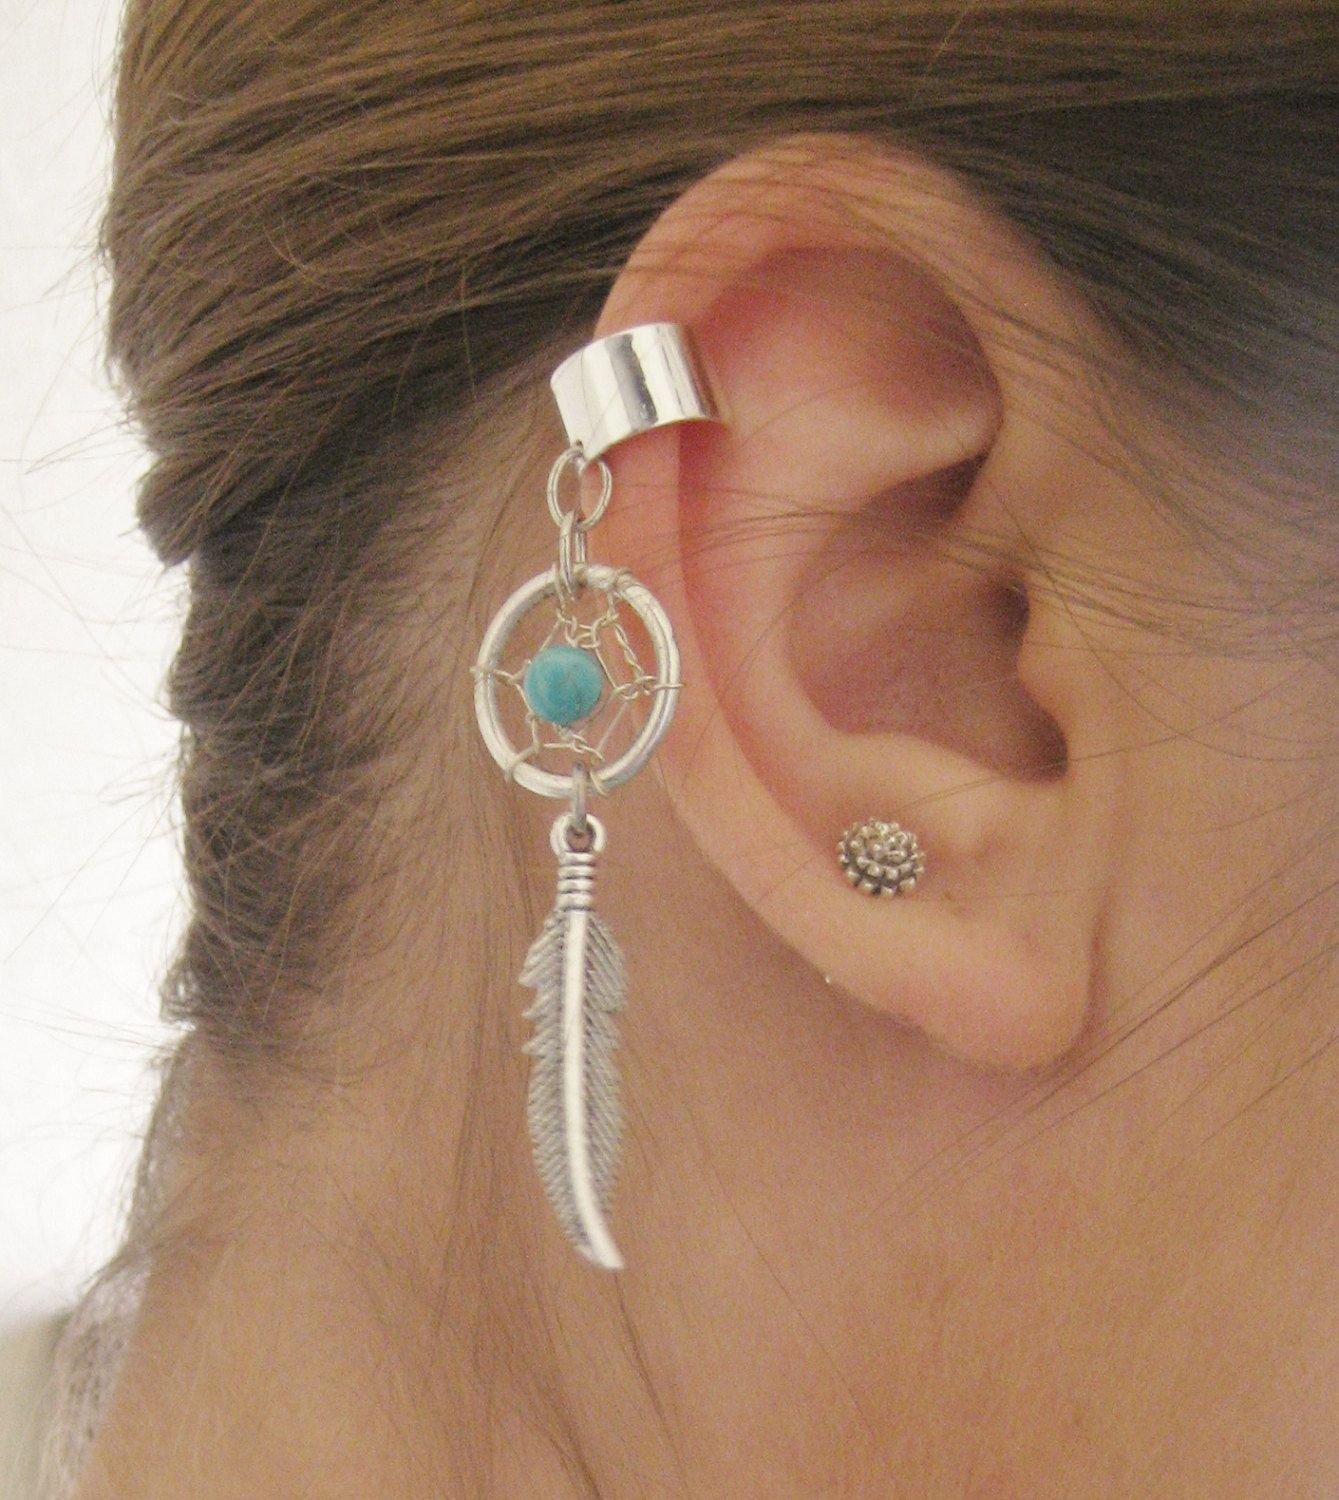 Dream Catcher Ear Cuff Dream Catcher Ear Cuff Turquoise Dreamcatcher Earcuff Feather 1